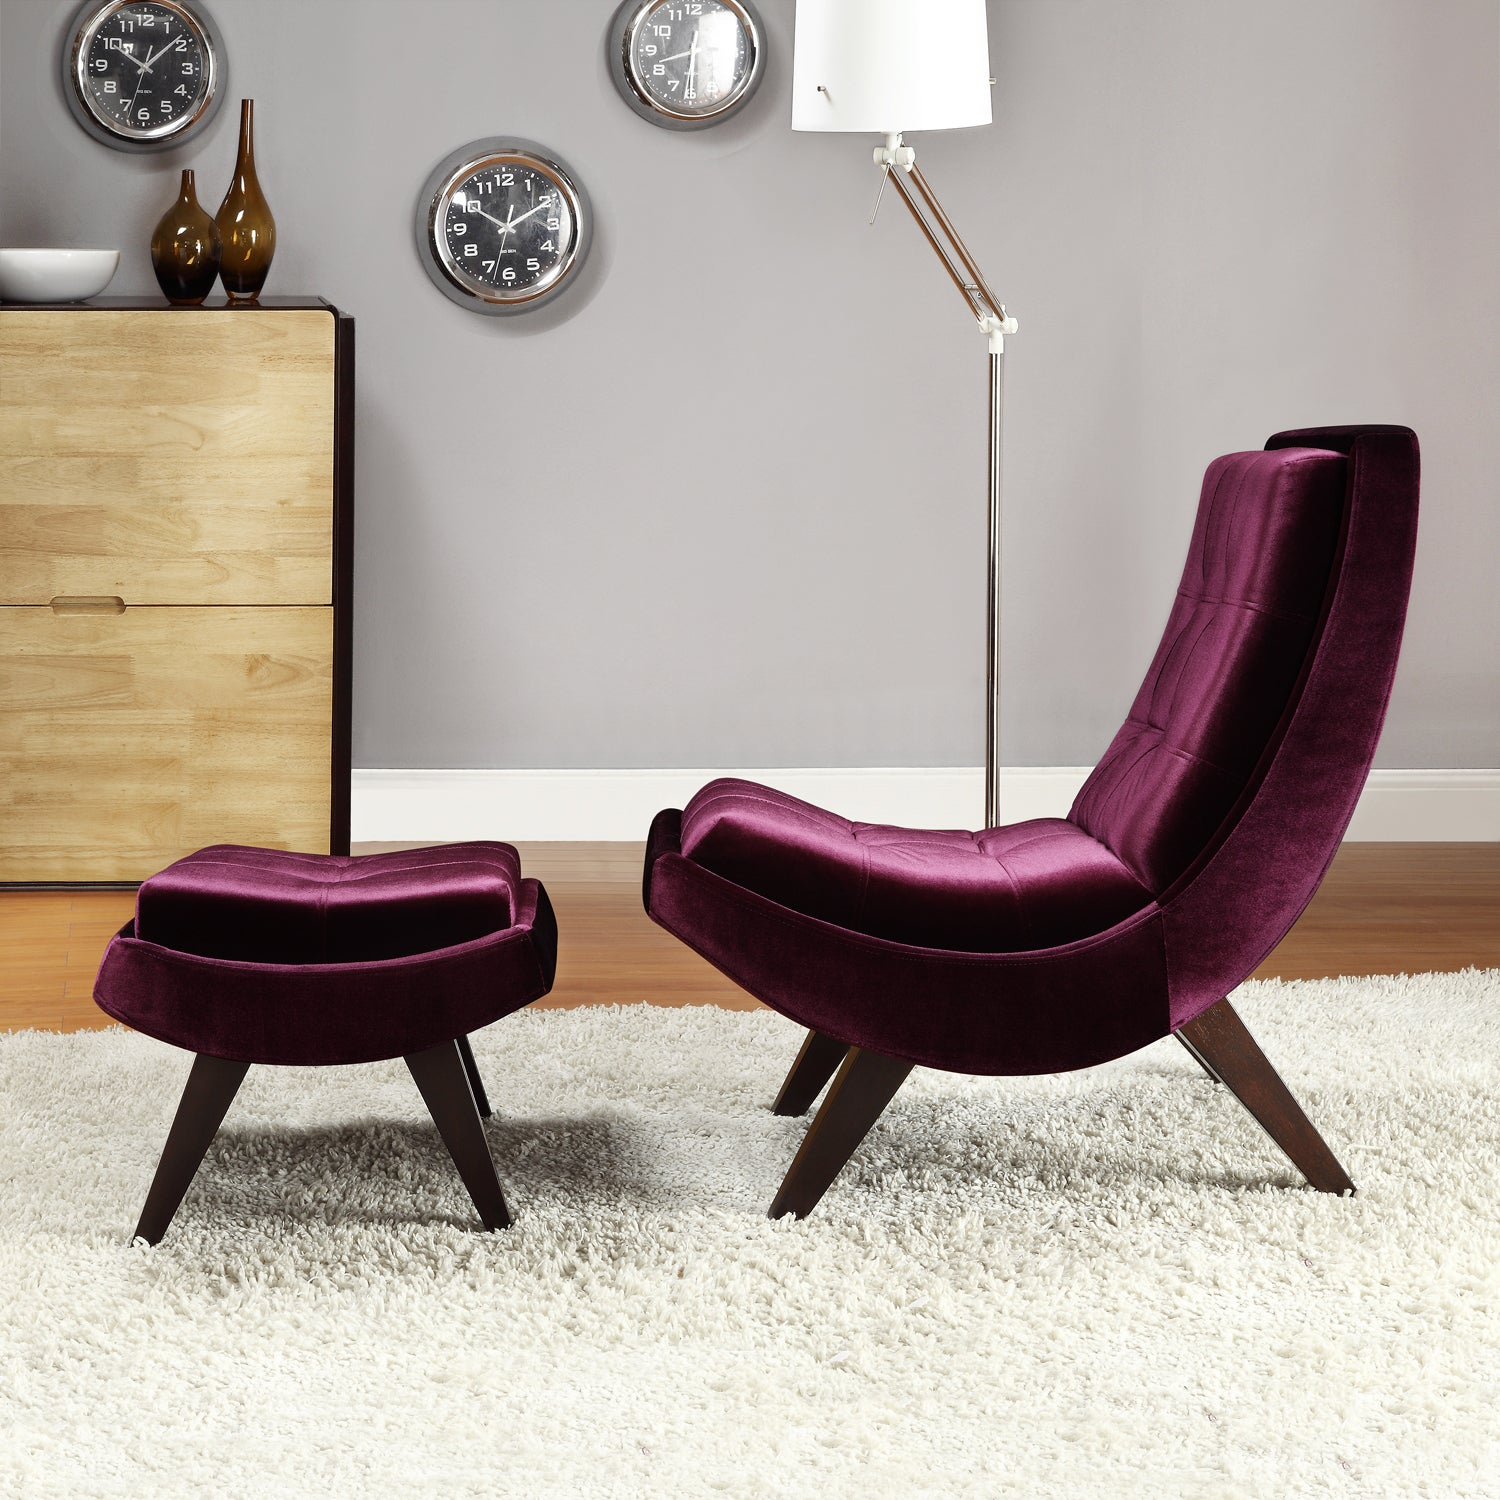 Shop Black Friday Deals On Inspire Q Albury Purple Velvet Lounging Chair With Ottoman Overstock 6310148